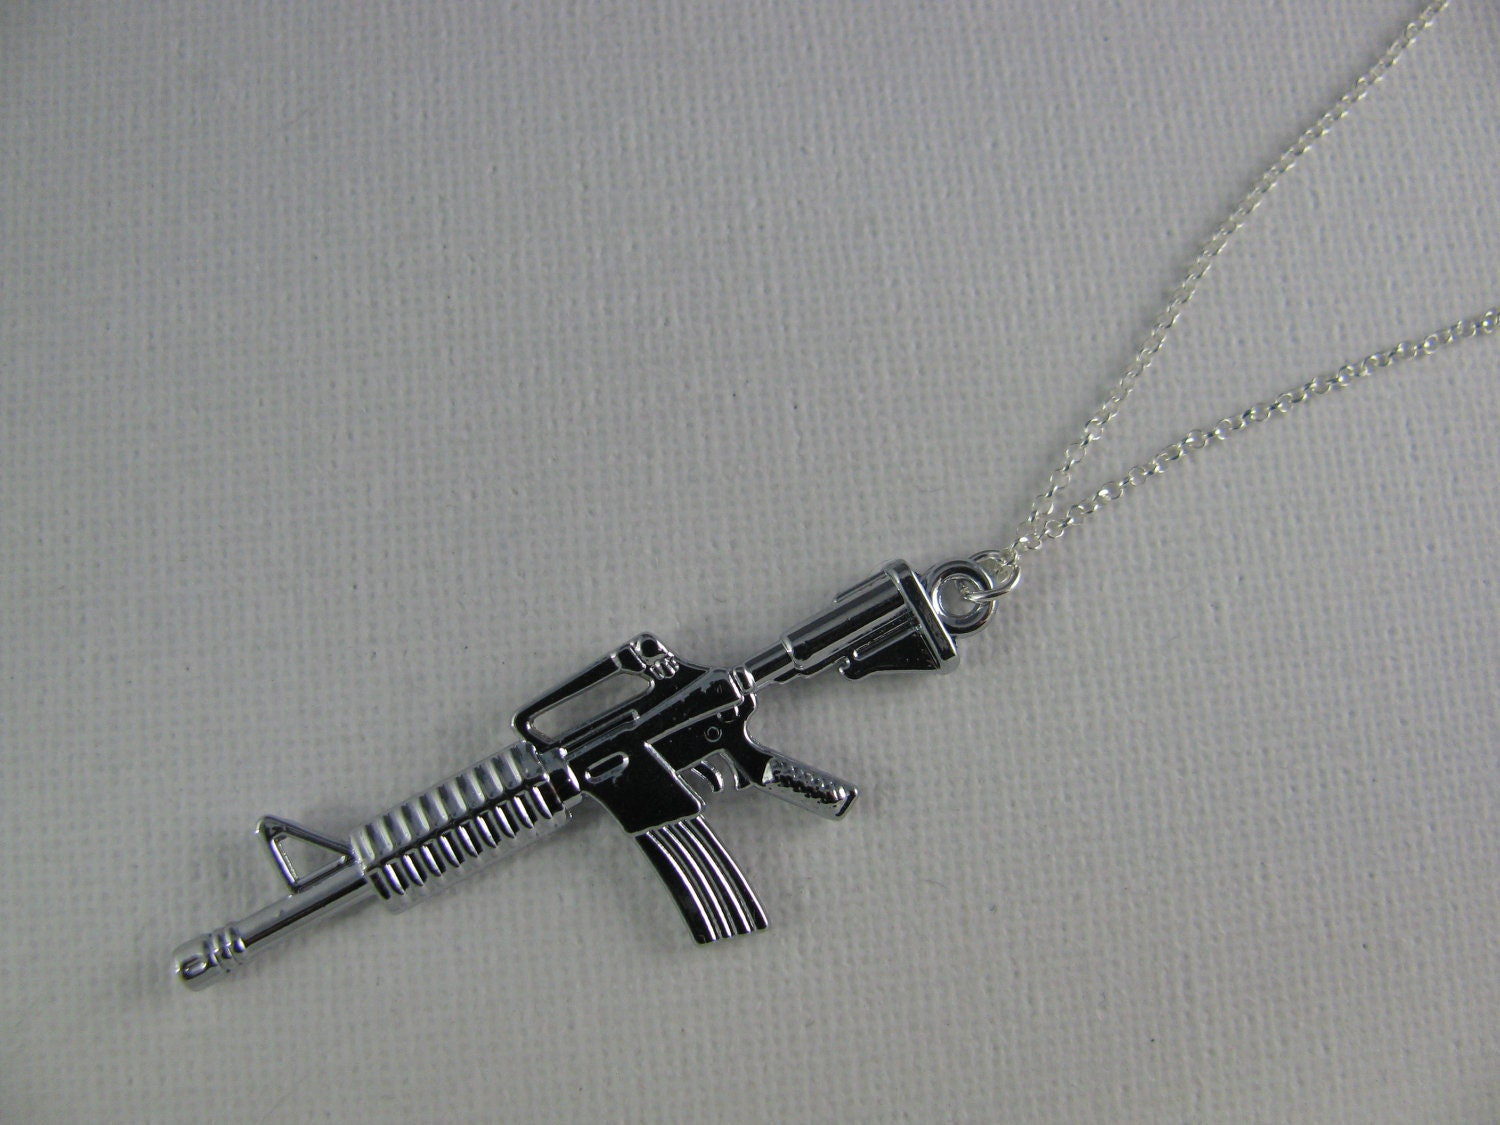 m16 rifle gun necklace on 925 sterling silver chain m16 rifle